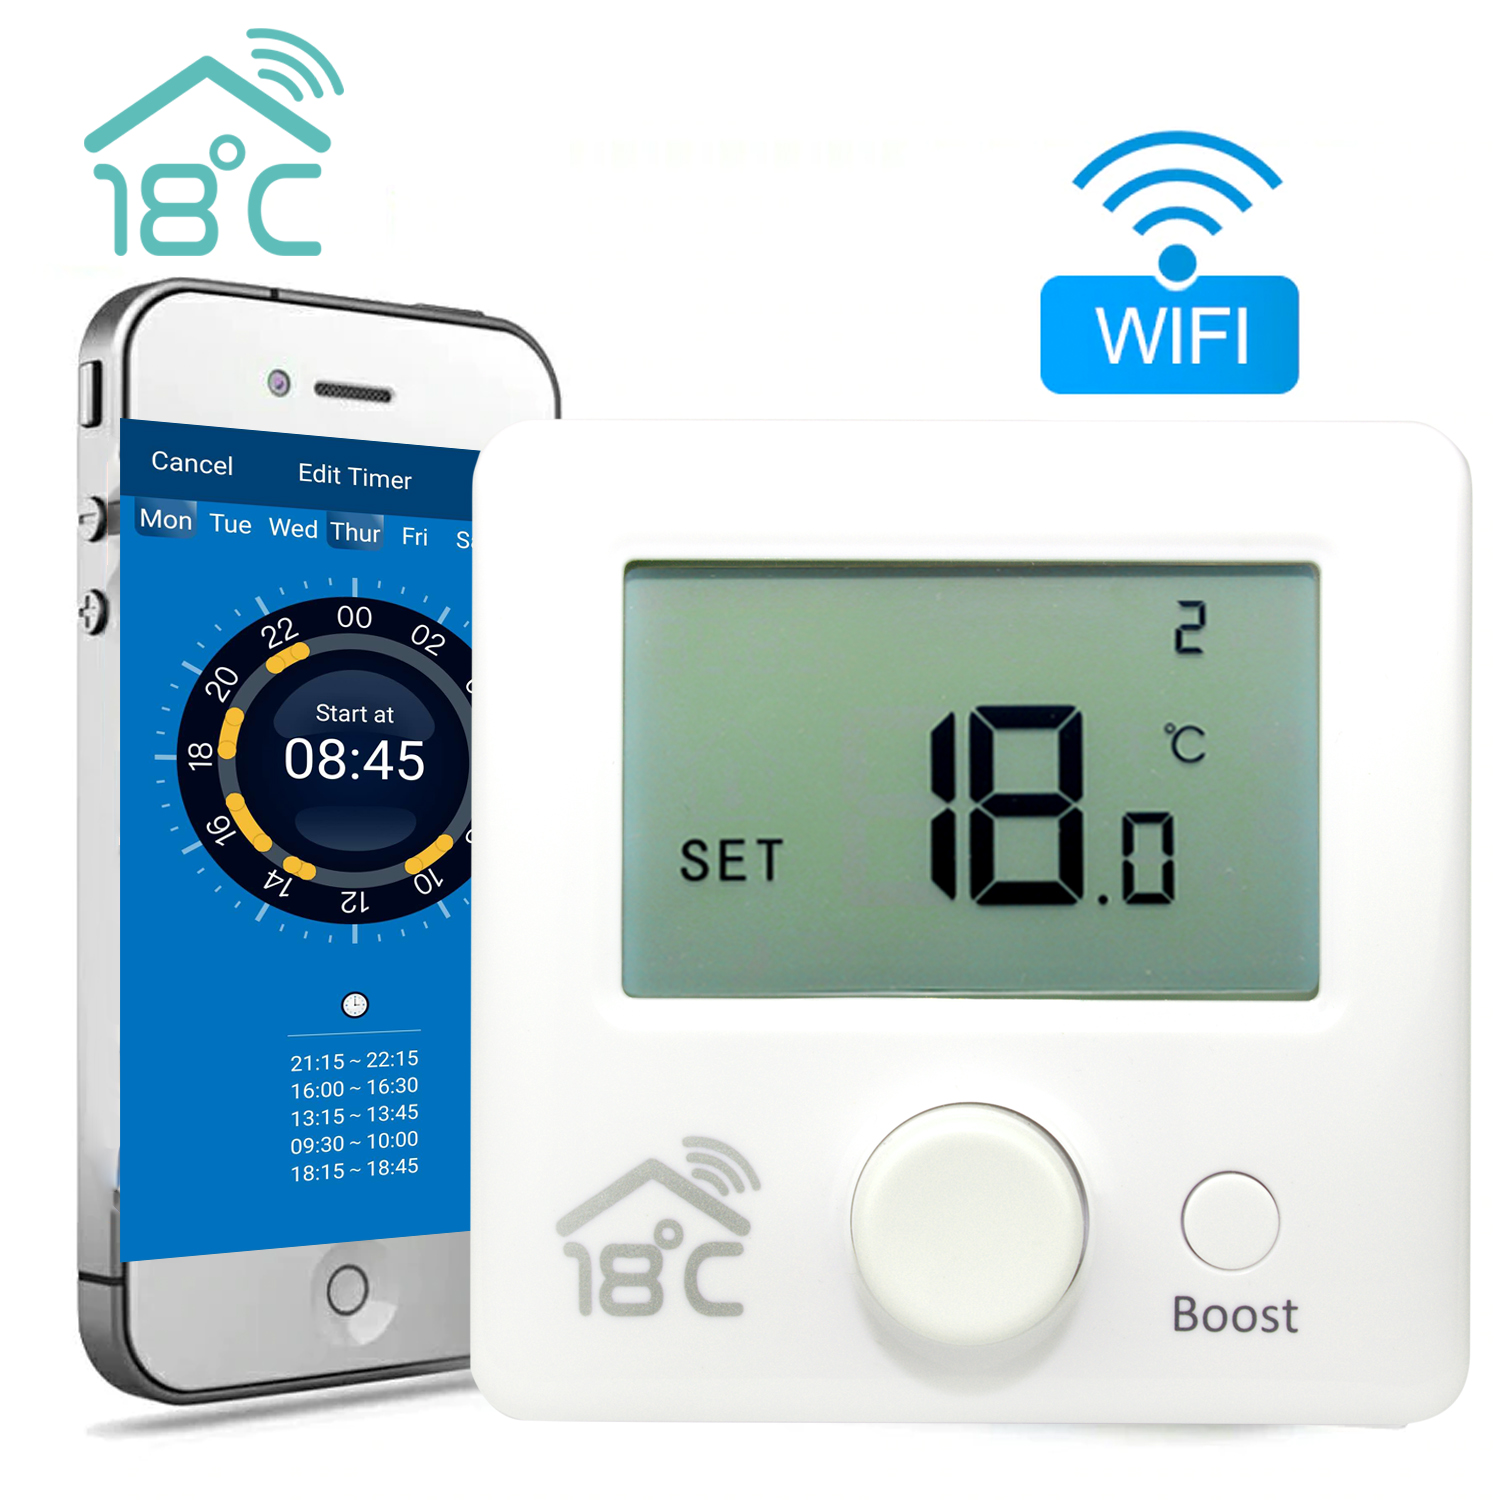 18 degrees Remote Heating thermostat (Wifi)